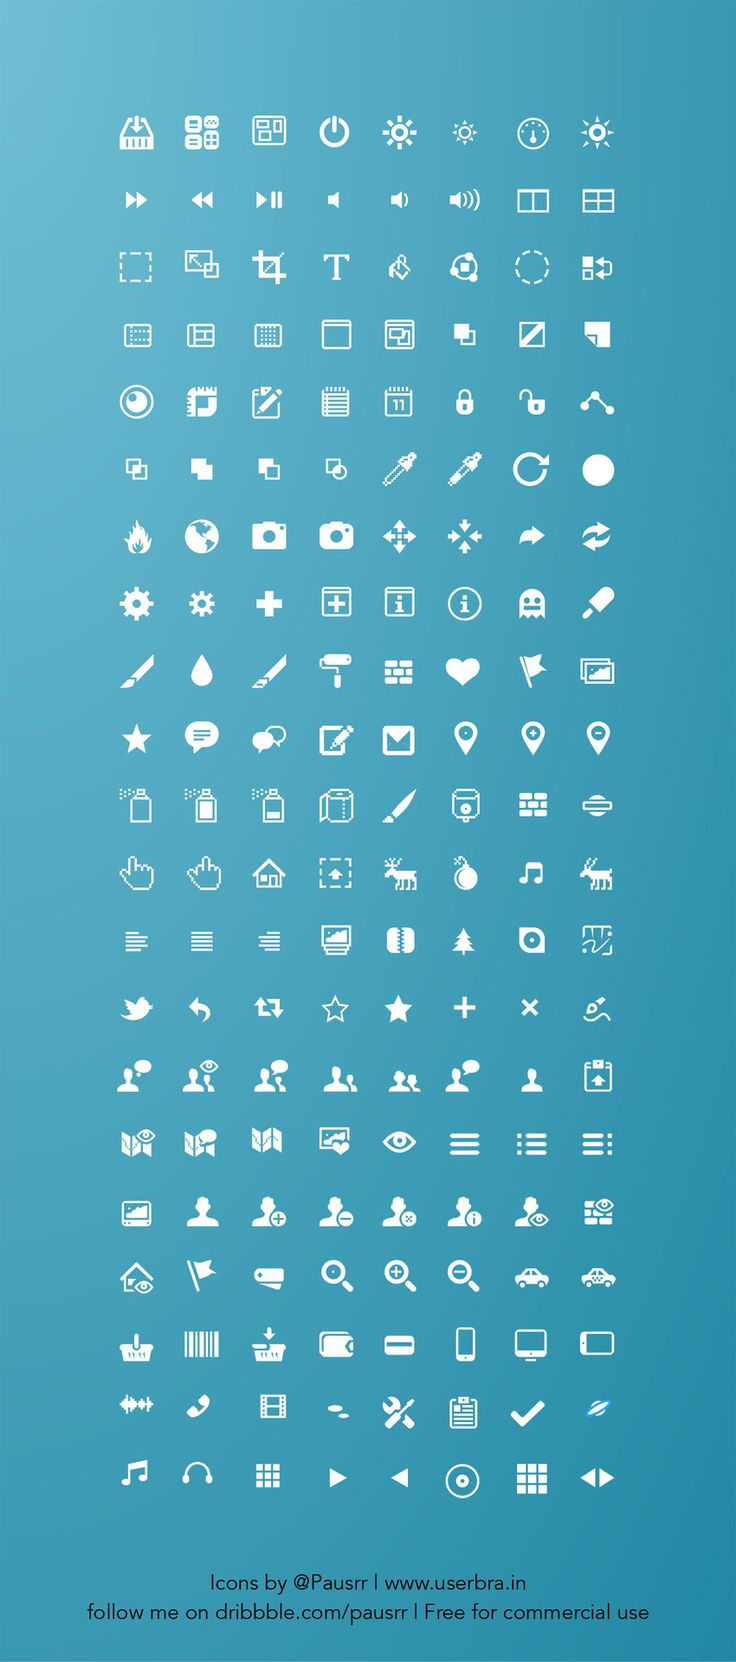 Web design freebies, Free Sketch icon set by Pausrr